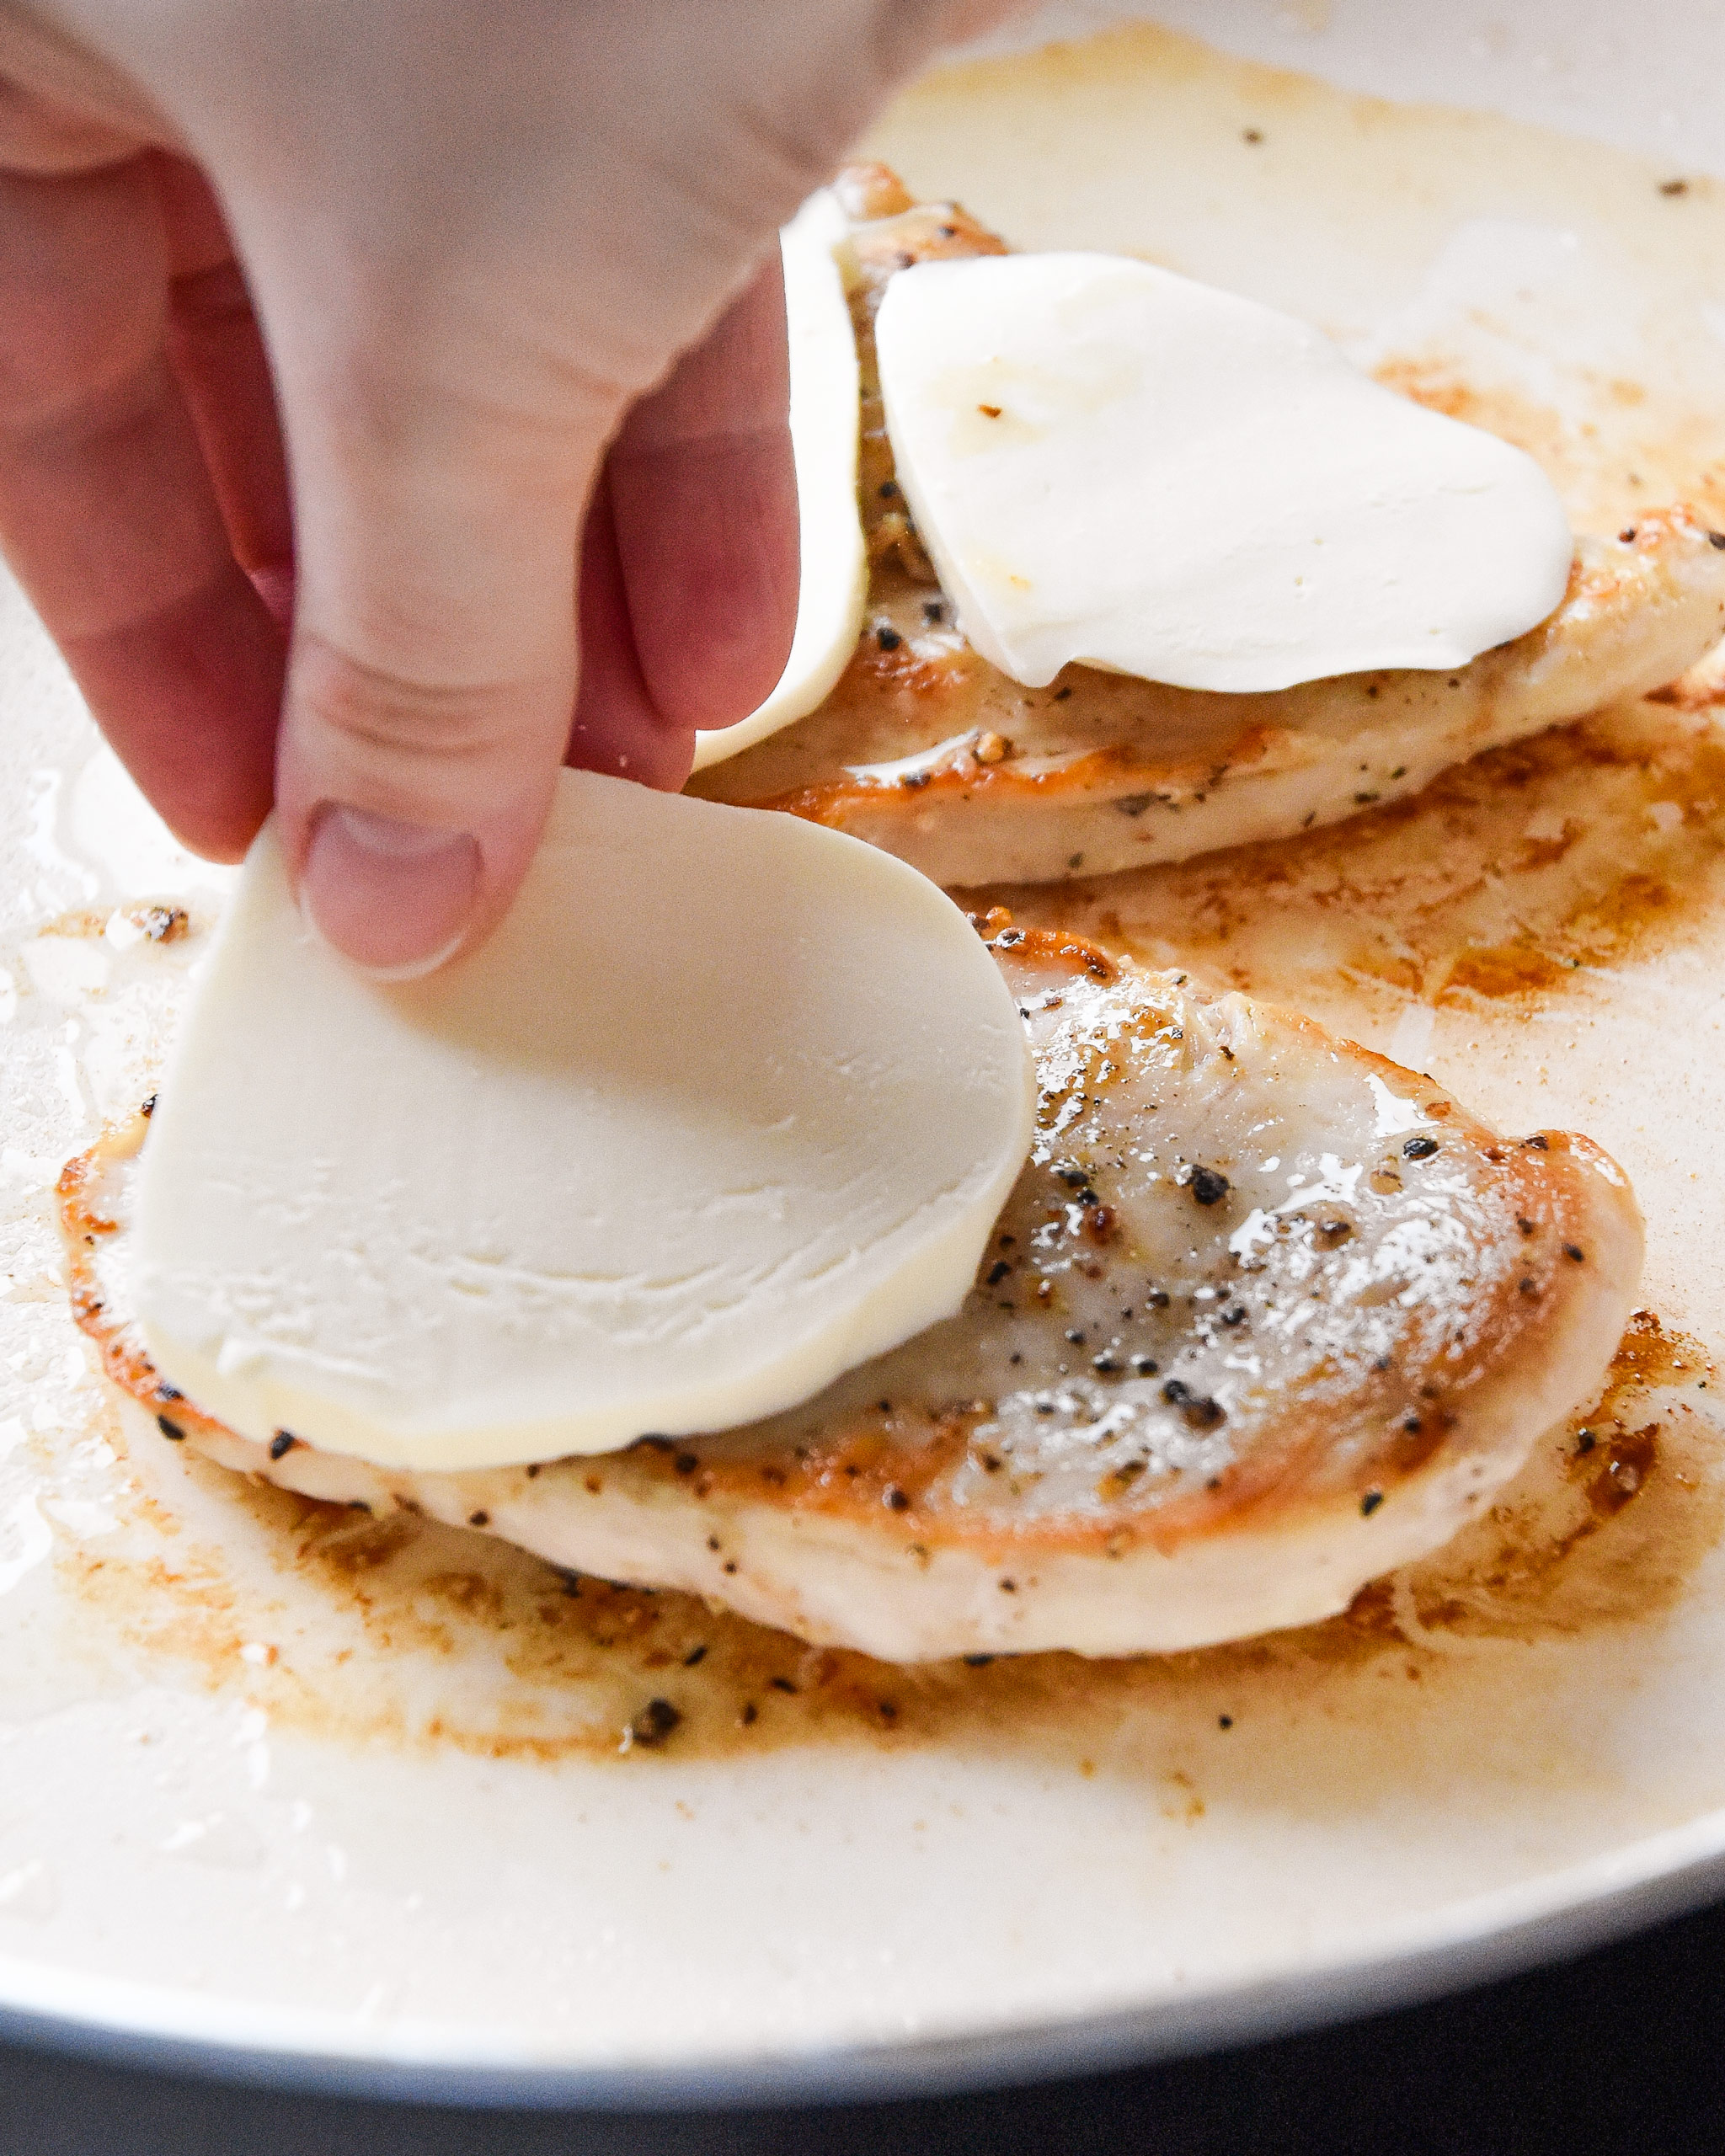 putting mozzarella cheese on the cooking chicken breast.